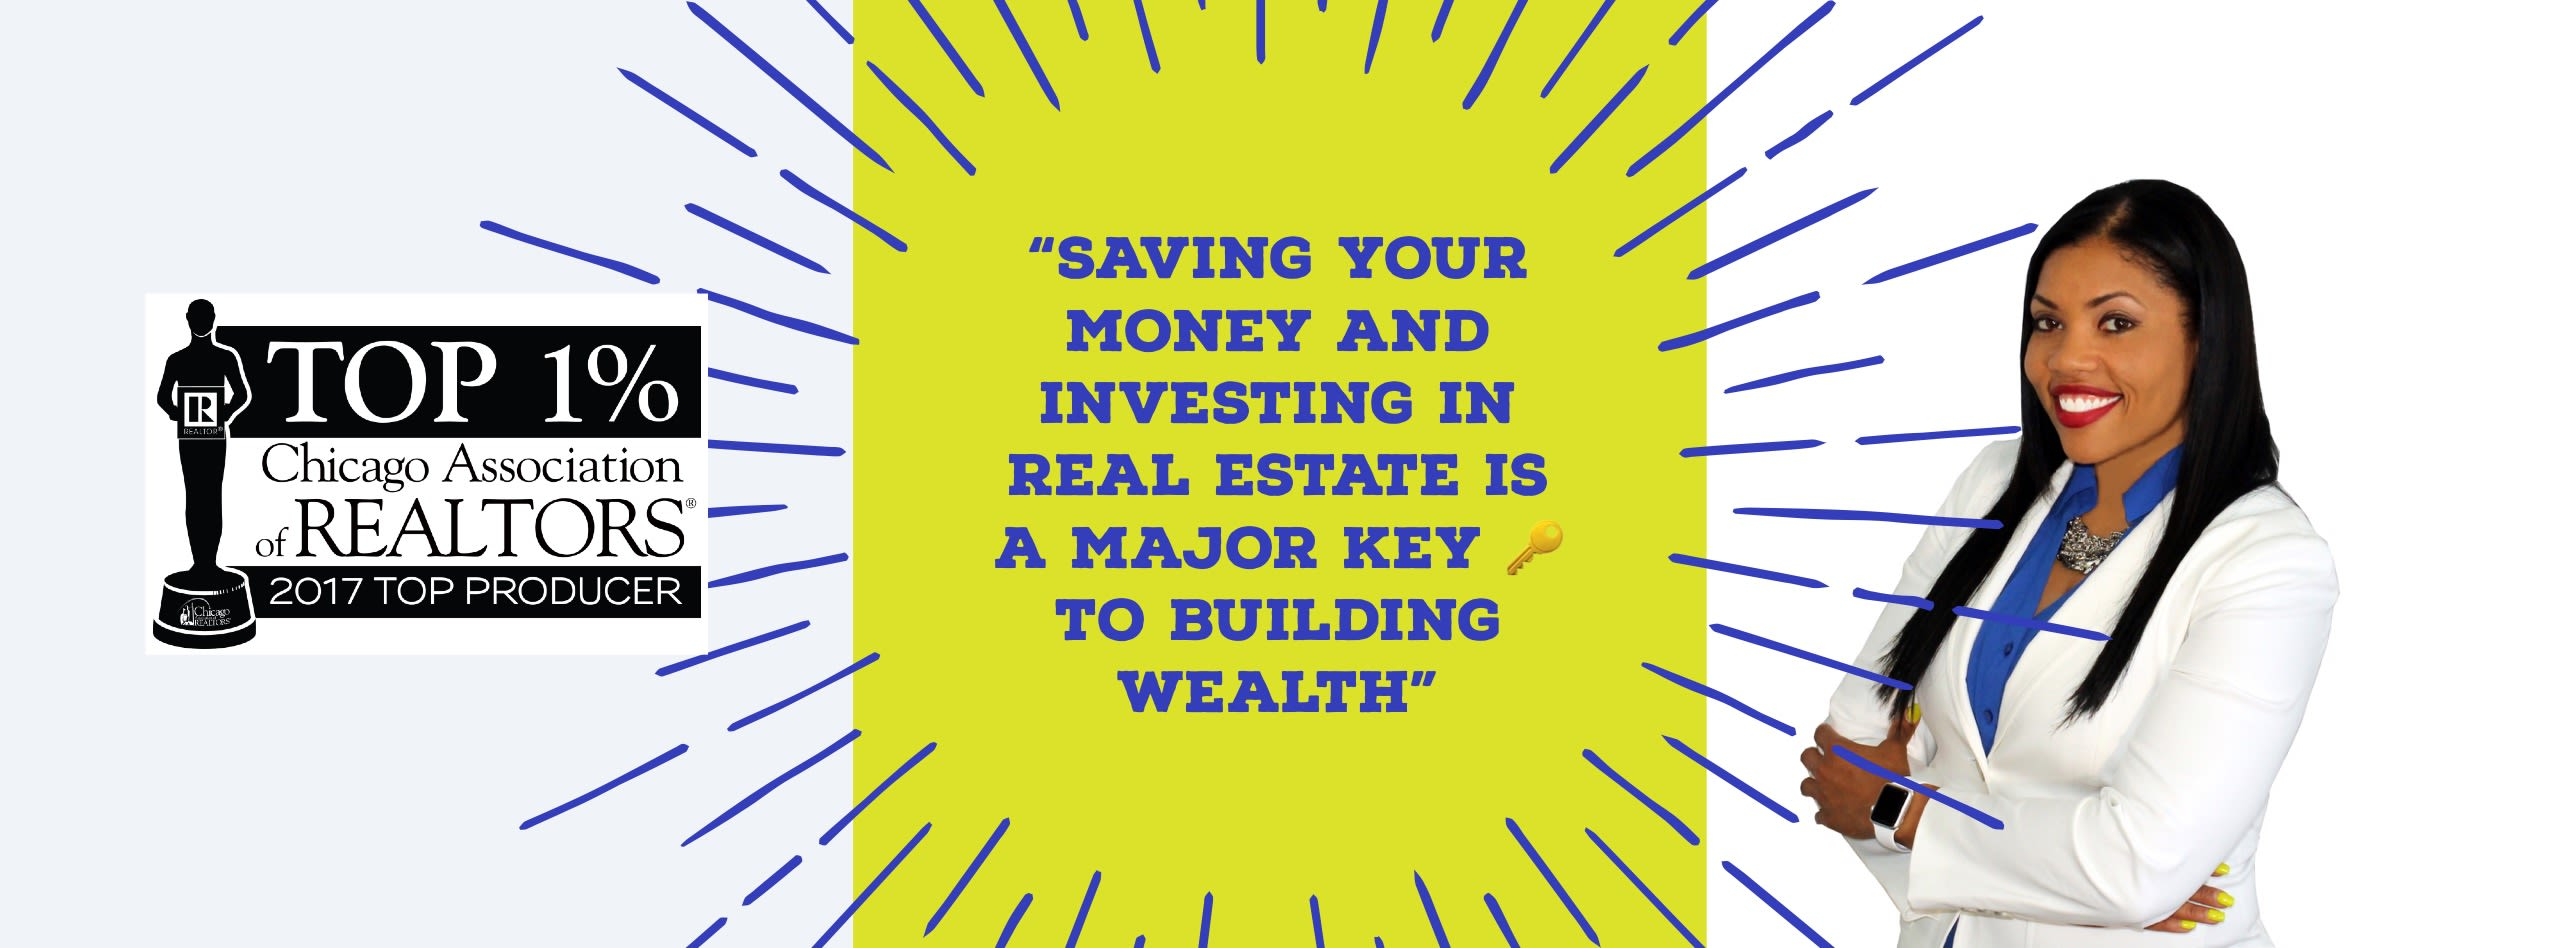 The #1 way to build wealth is through Real Estate